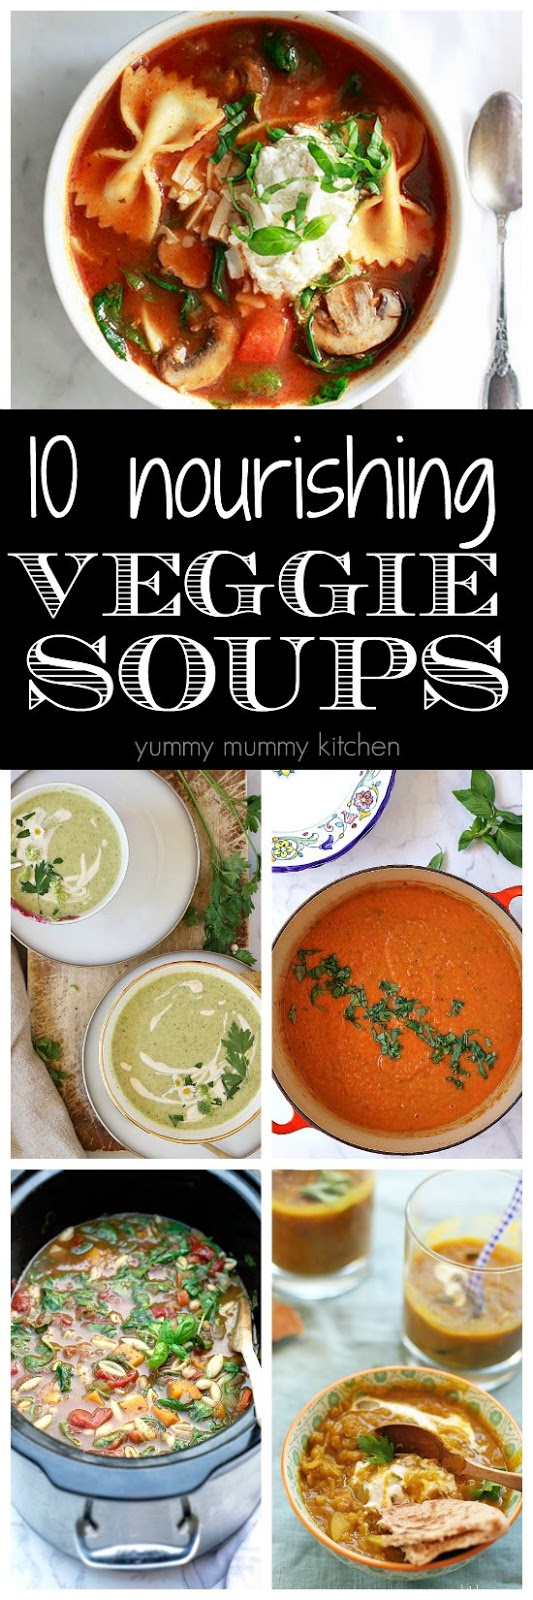 These 10 vegetarian and vegan soup recipes are easy to make, filled with healthy ingredients, and so delicious!